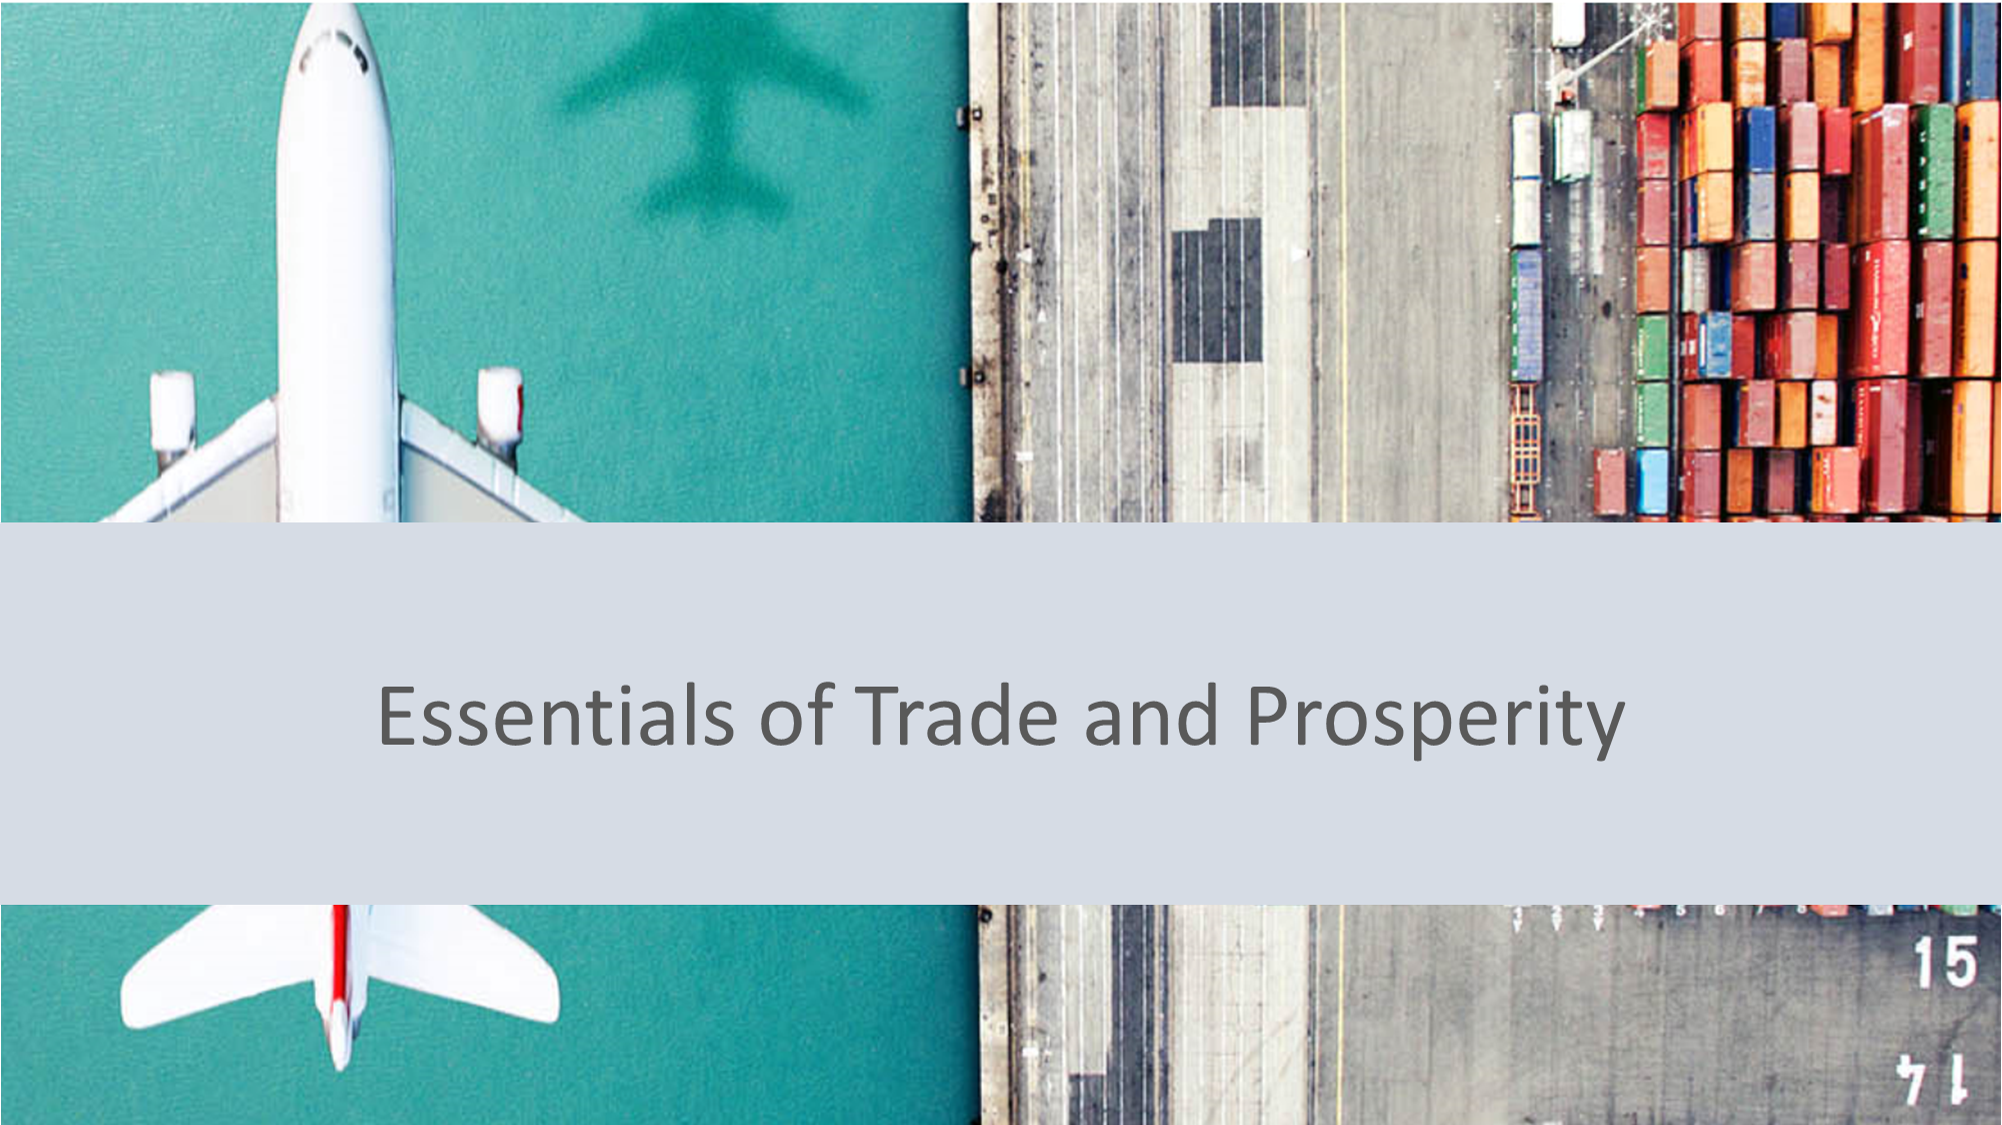 Essentials of Trade and Prosperity